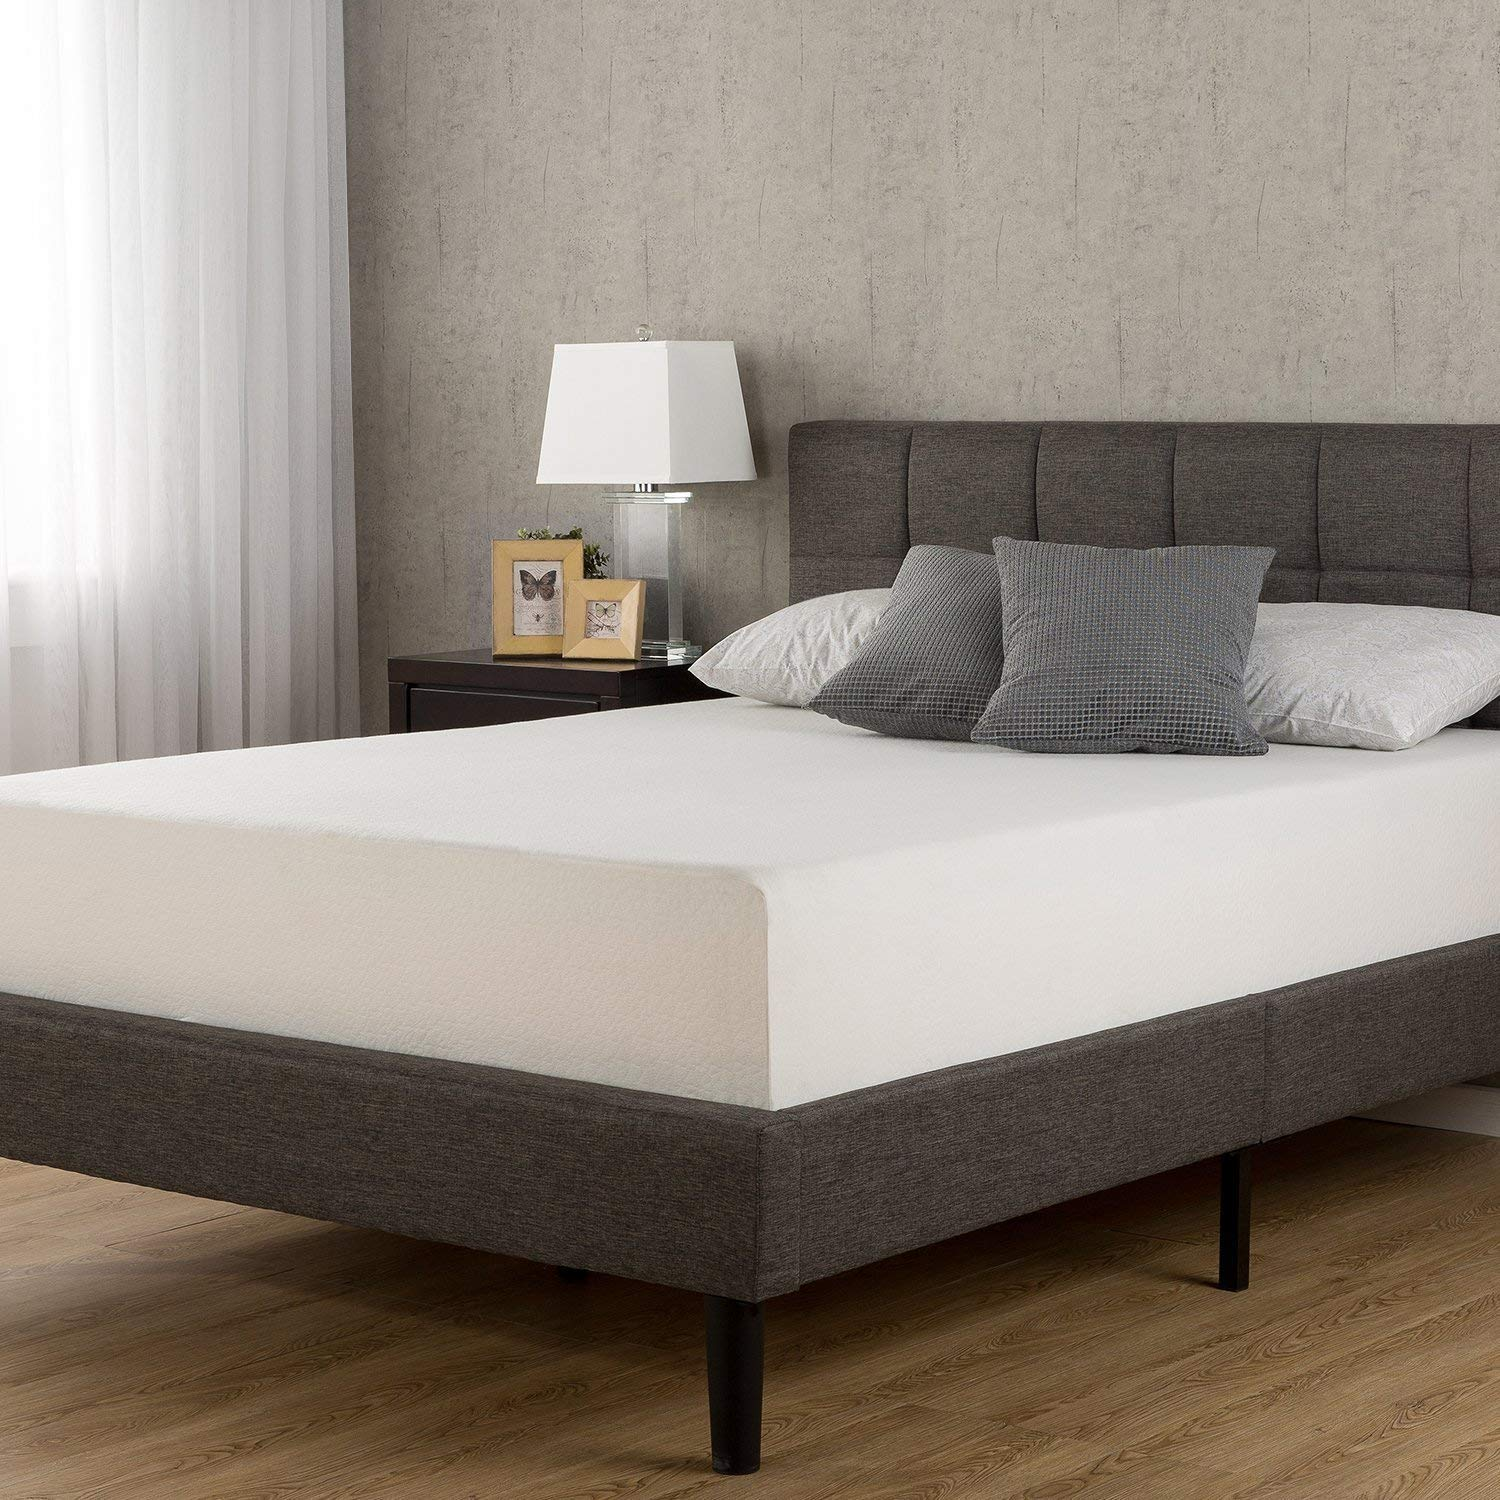 Zinus Best Mattress For Heavy People review by www.snoremegazine.com